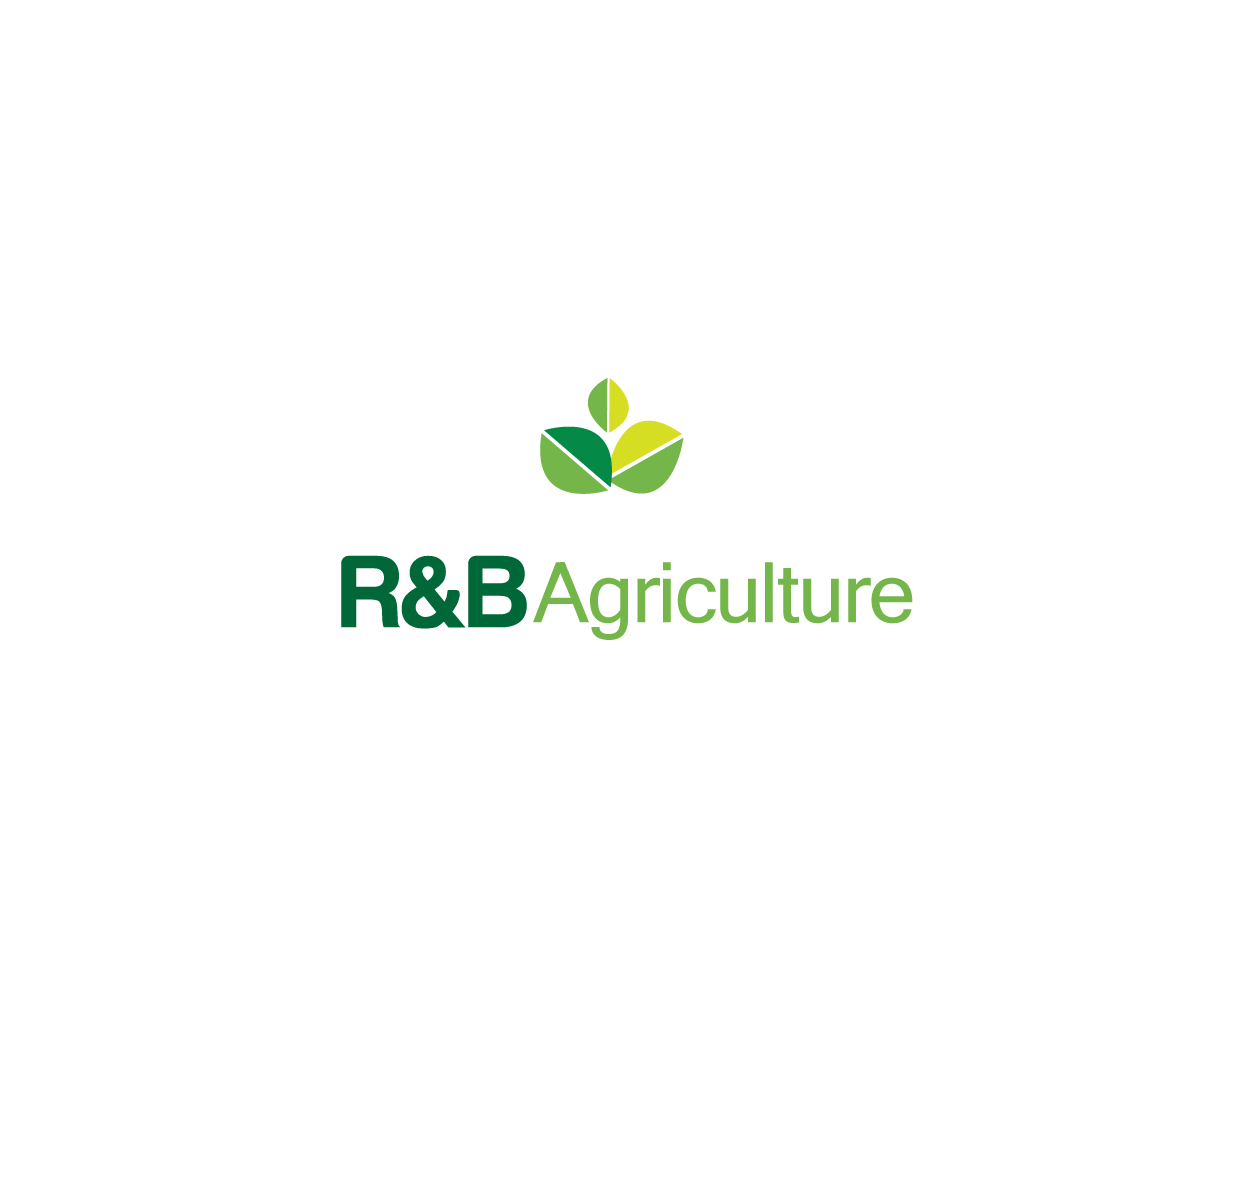 Logo Design by meme - Entry No. 43 in the Logo Design Contest Captivating Logo Design for R & B Agriculture.